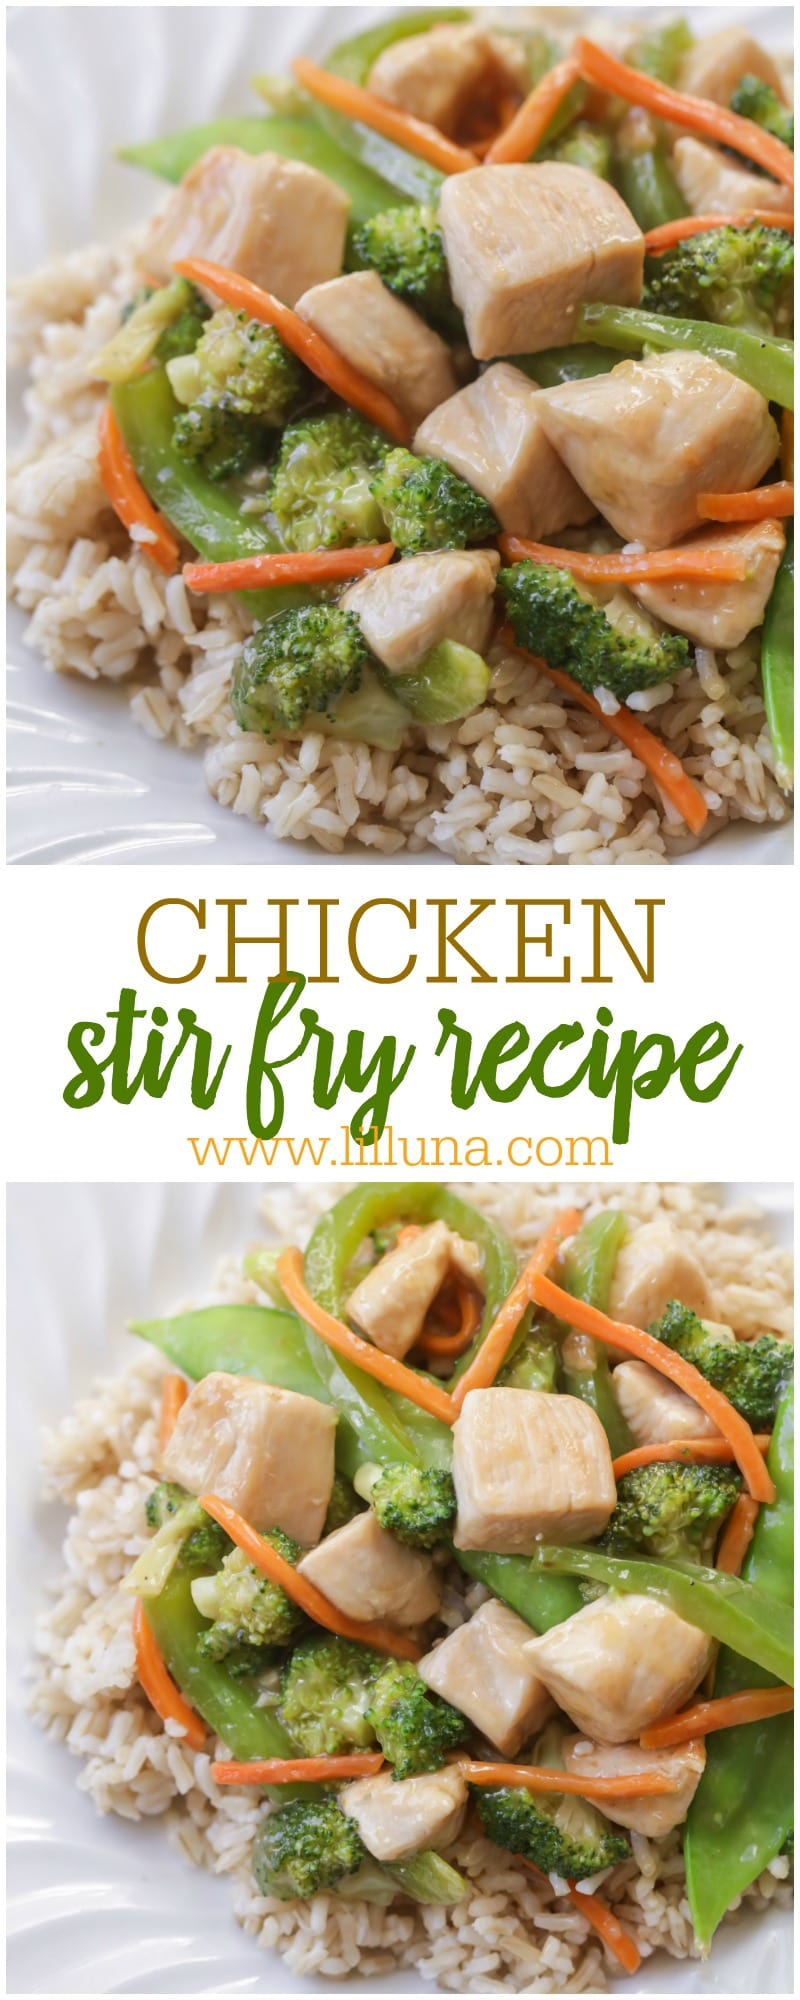 Simple, quick, and delicious Chicken Stir Fry. This tasty dinner is simple and is filled with broccoli, carrots, and snow peas!